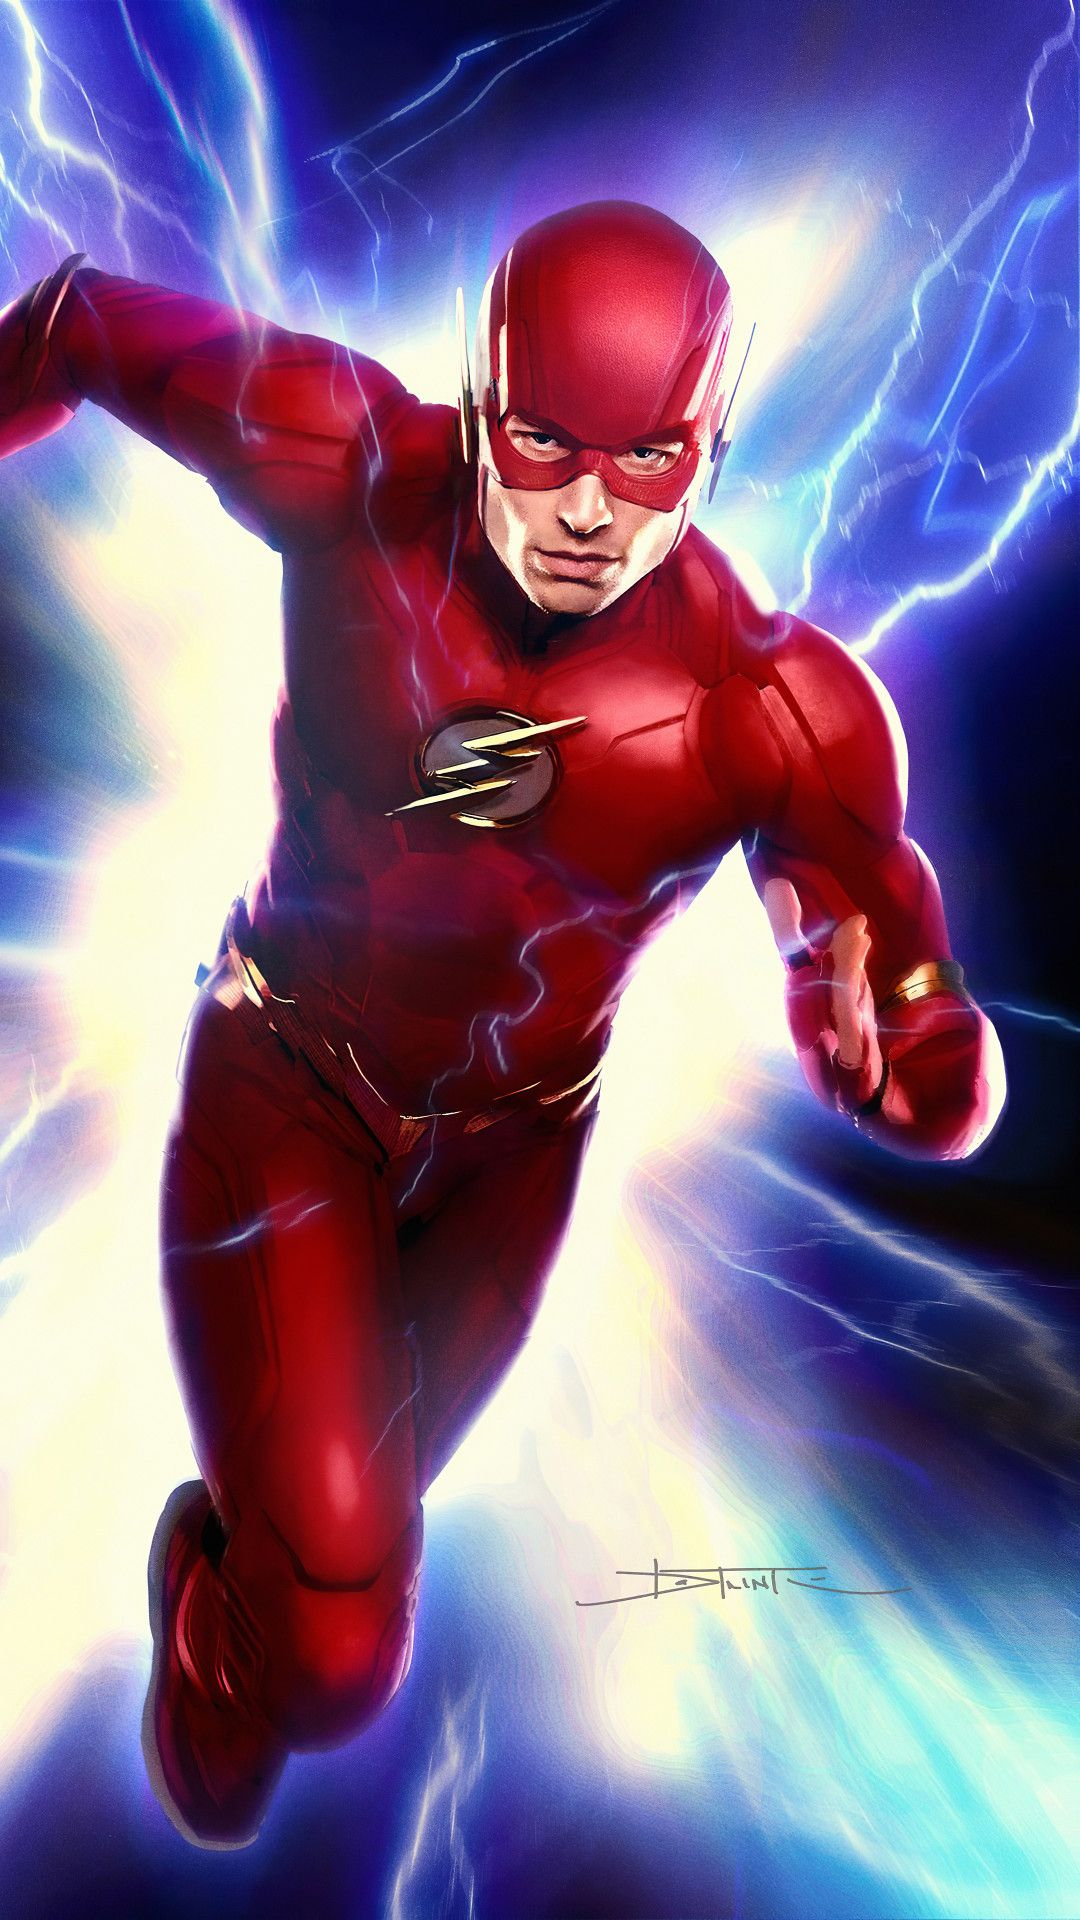 Flash art4k mobile wallpaper iphone android samsung